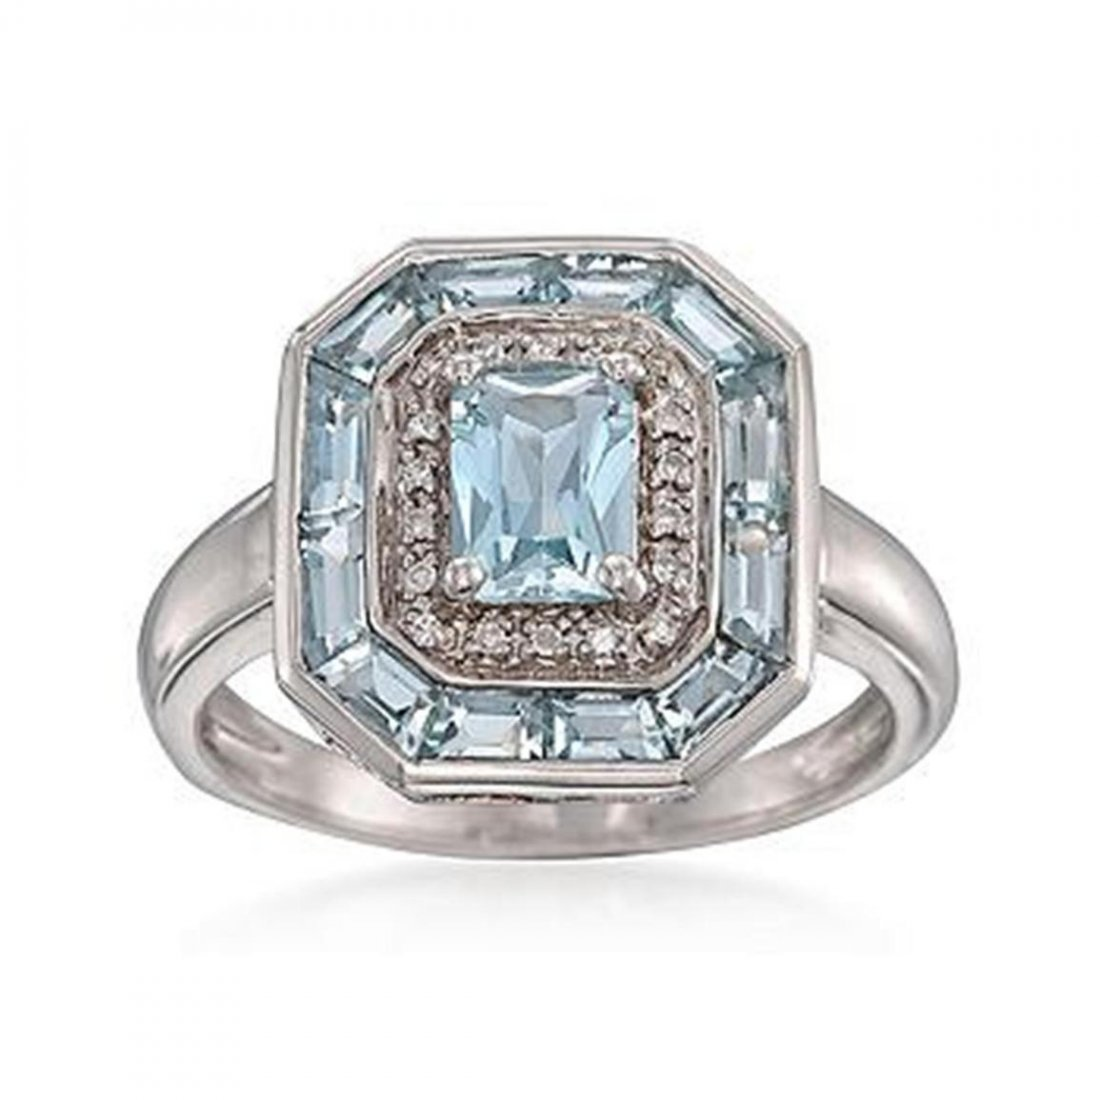 1.50 ct. t.w. Aquamarine Dinner Ring With Diamonds in S